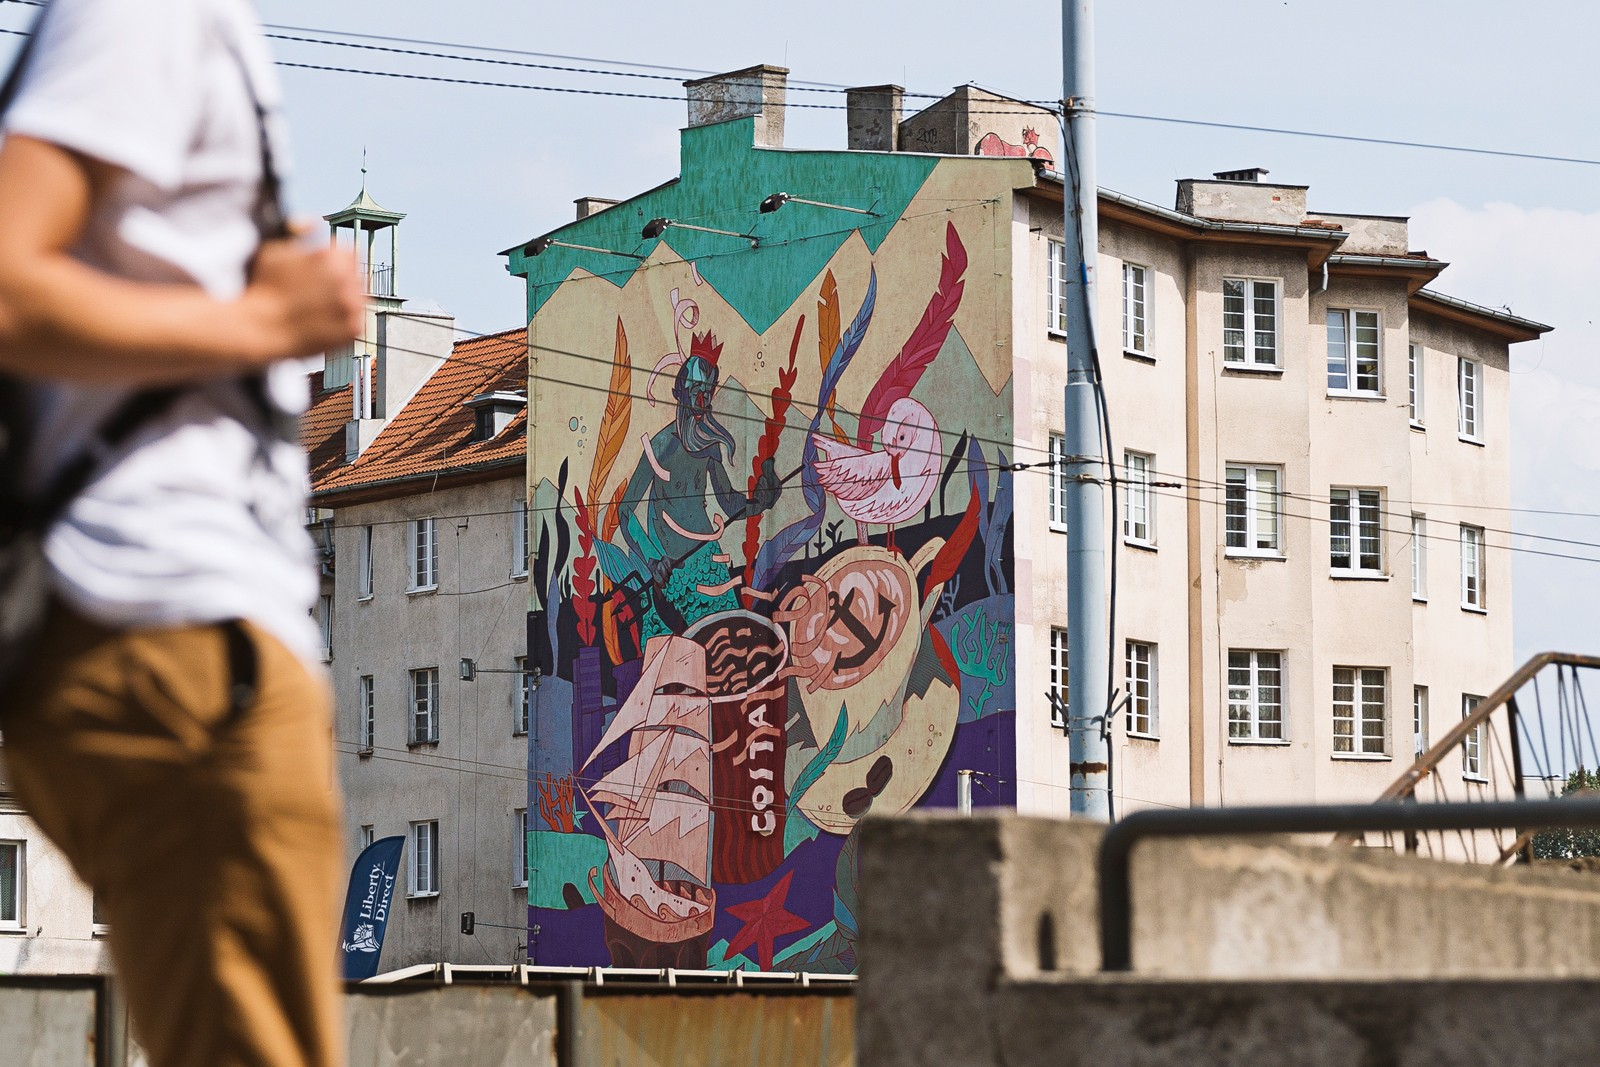 A Patryk Hardziej mural project resembling the Tricity area on Morska street in Gdynia | Costa Coffee's 1st Birthday | Portfolio